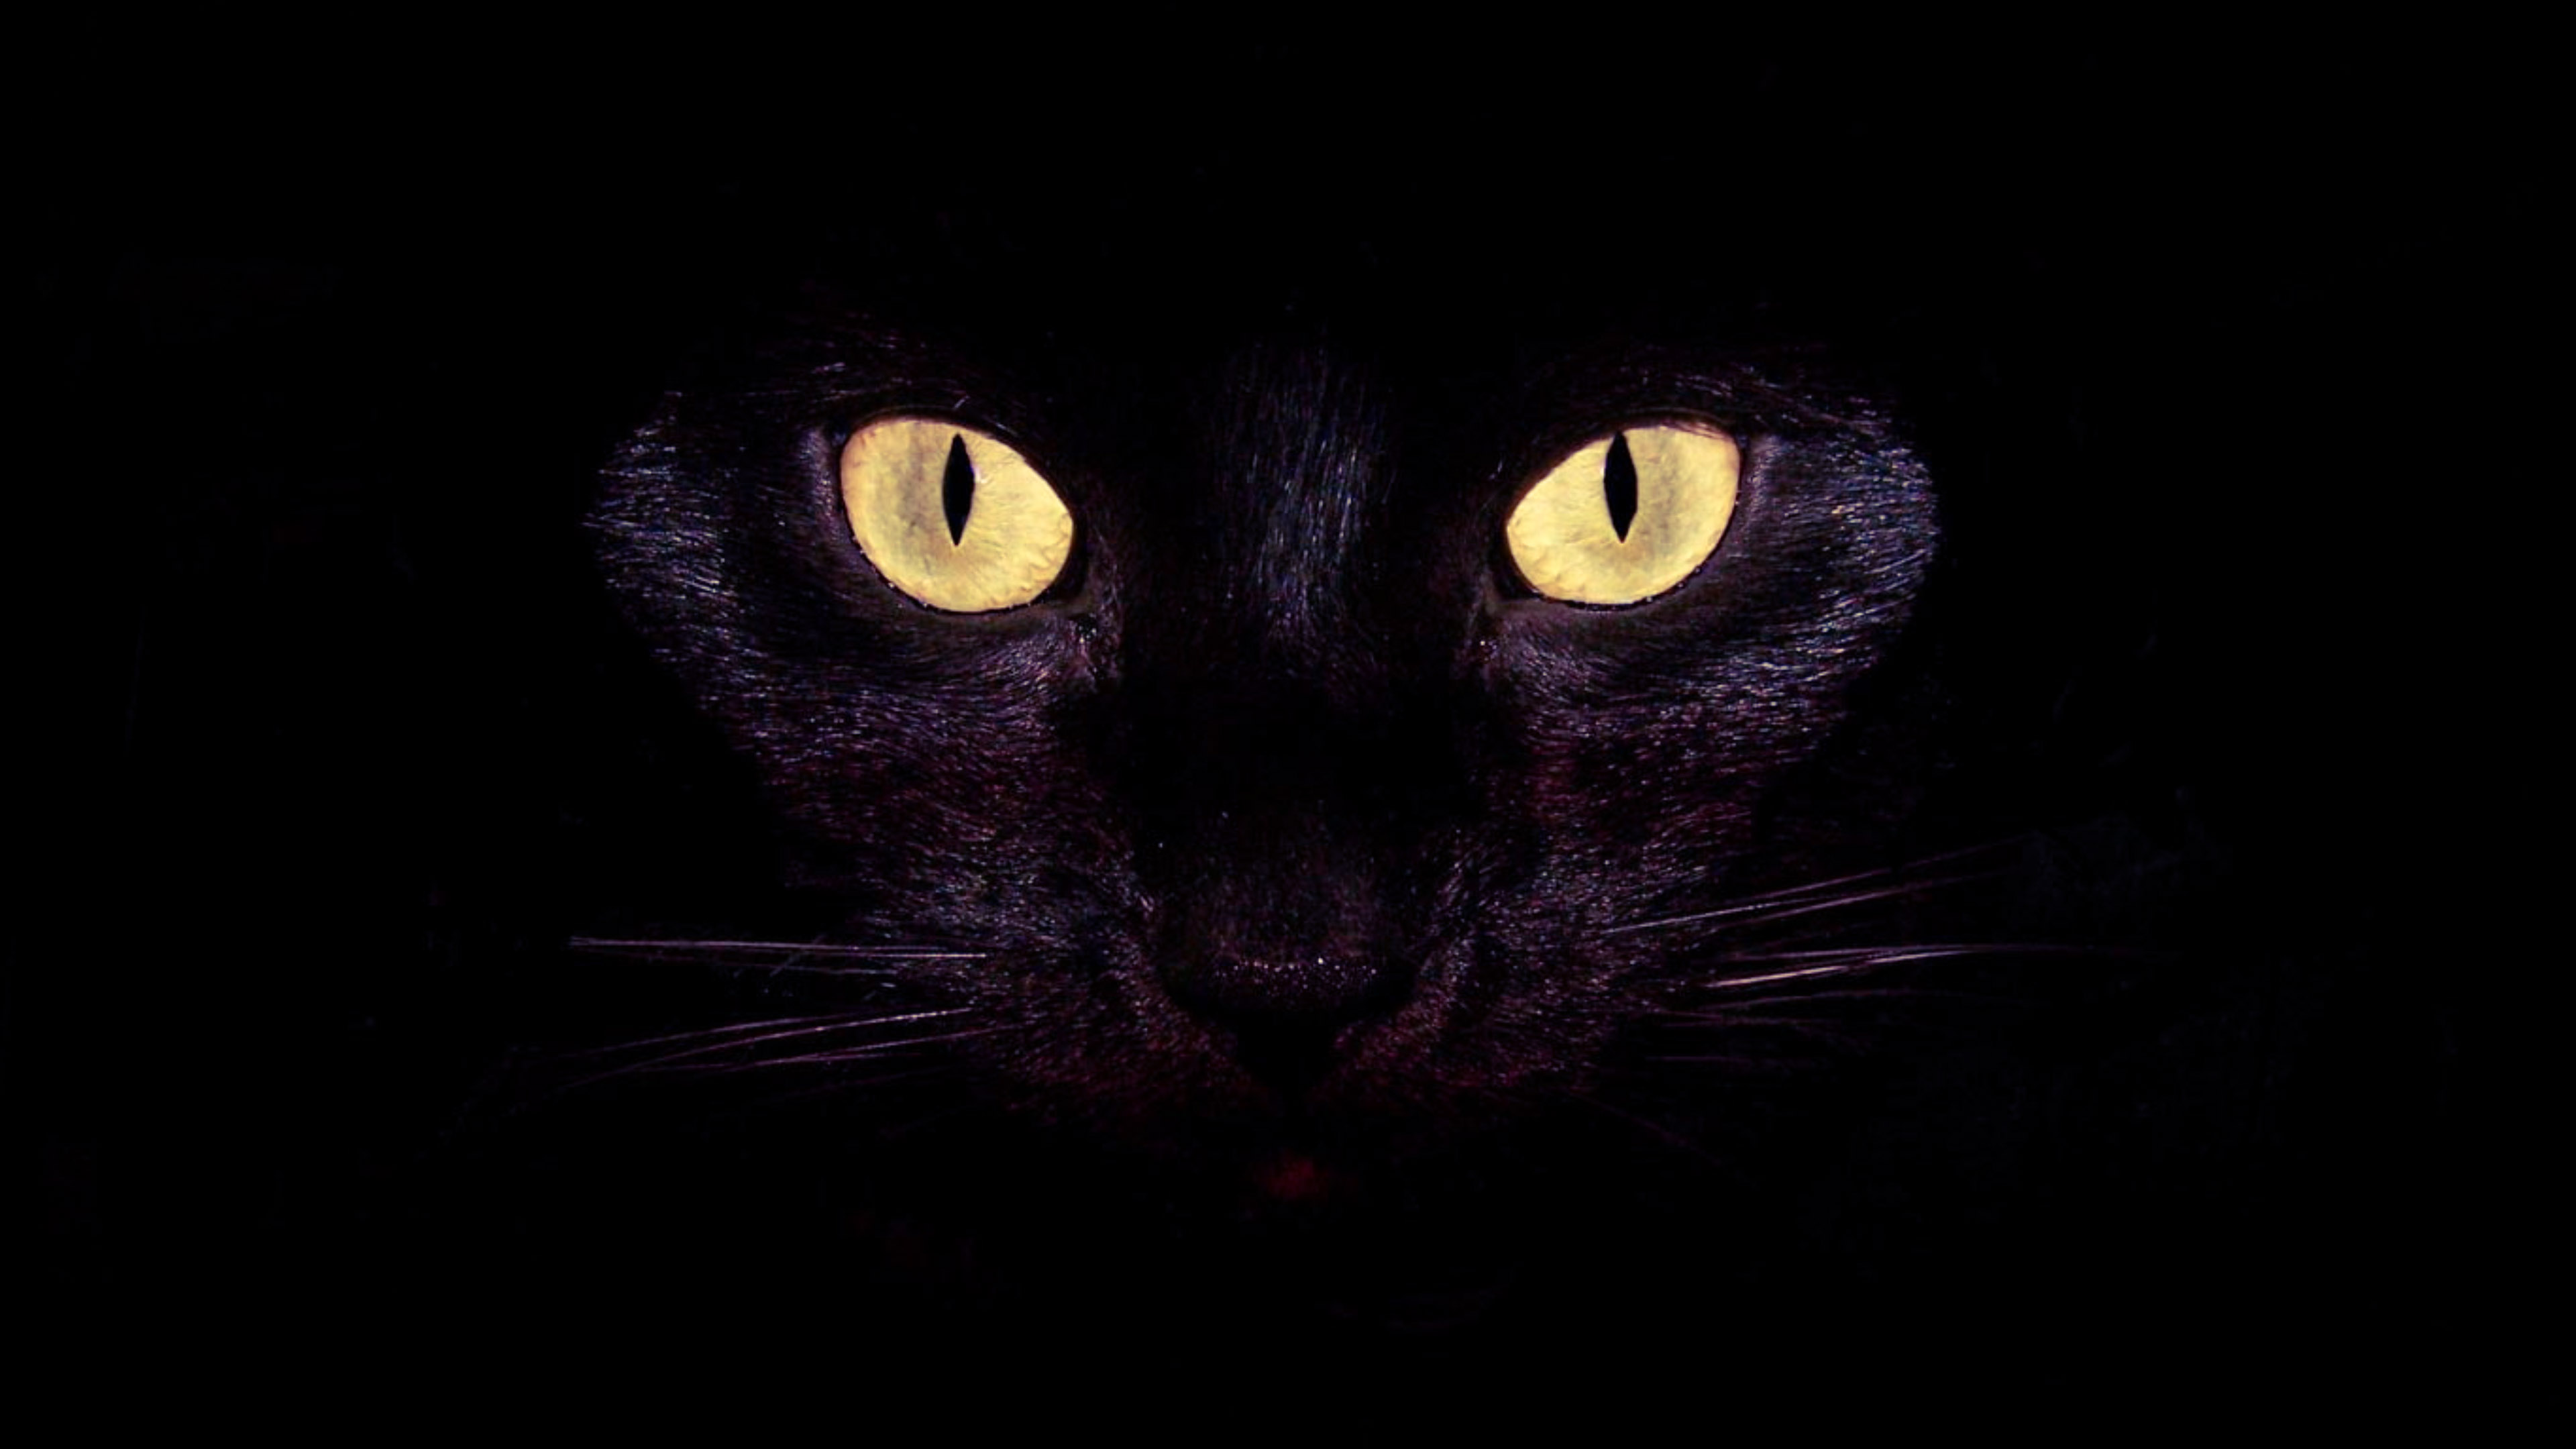 Cool Cat Eyes Wallpaper 2021 3840x2160